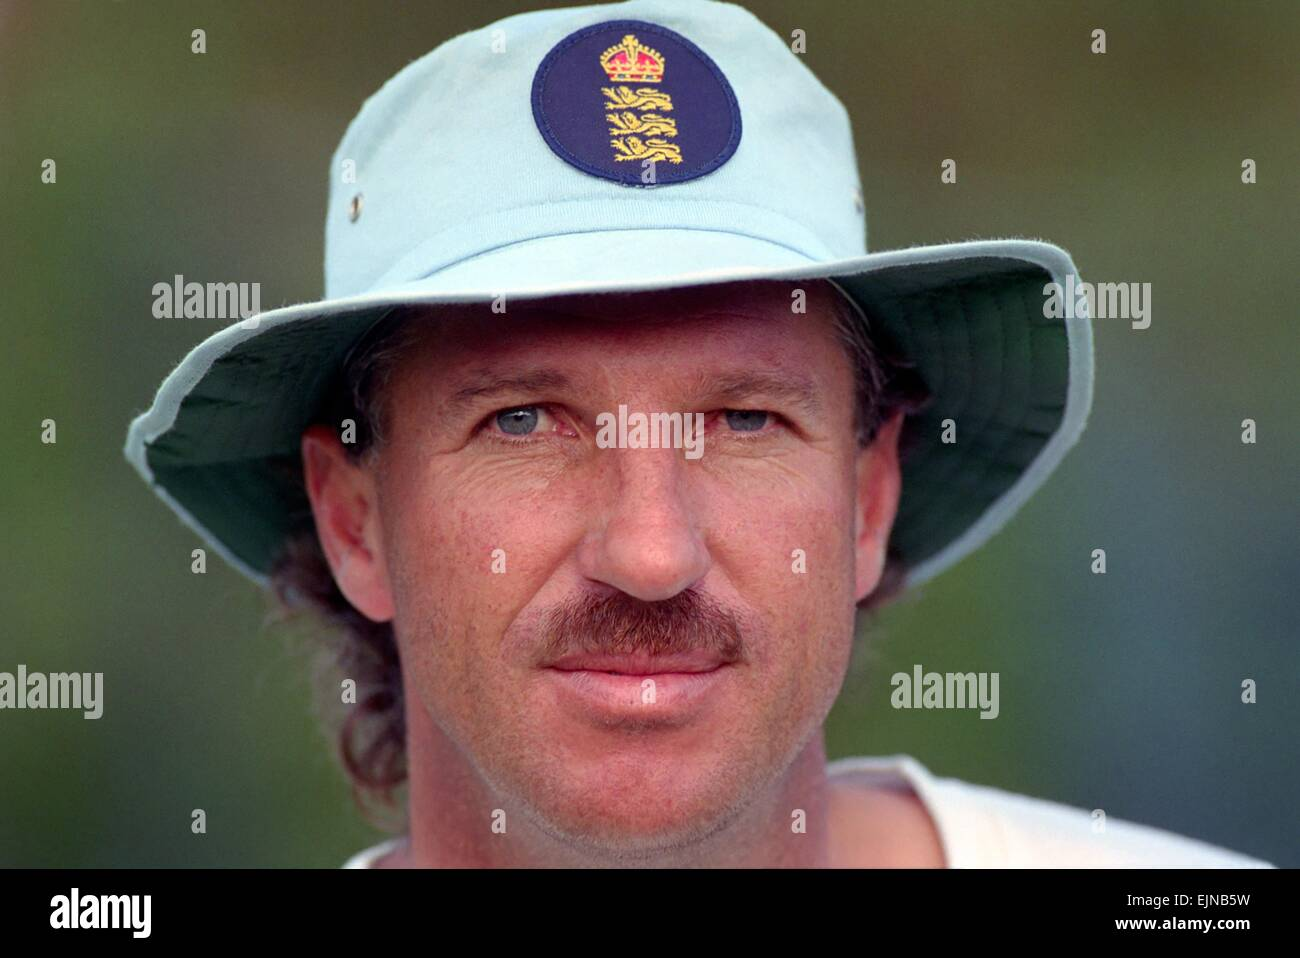 Cricket World Cup 1992 - Australia: Ian Botham. March 1992 DM-1894-397 - Stock Image